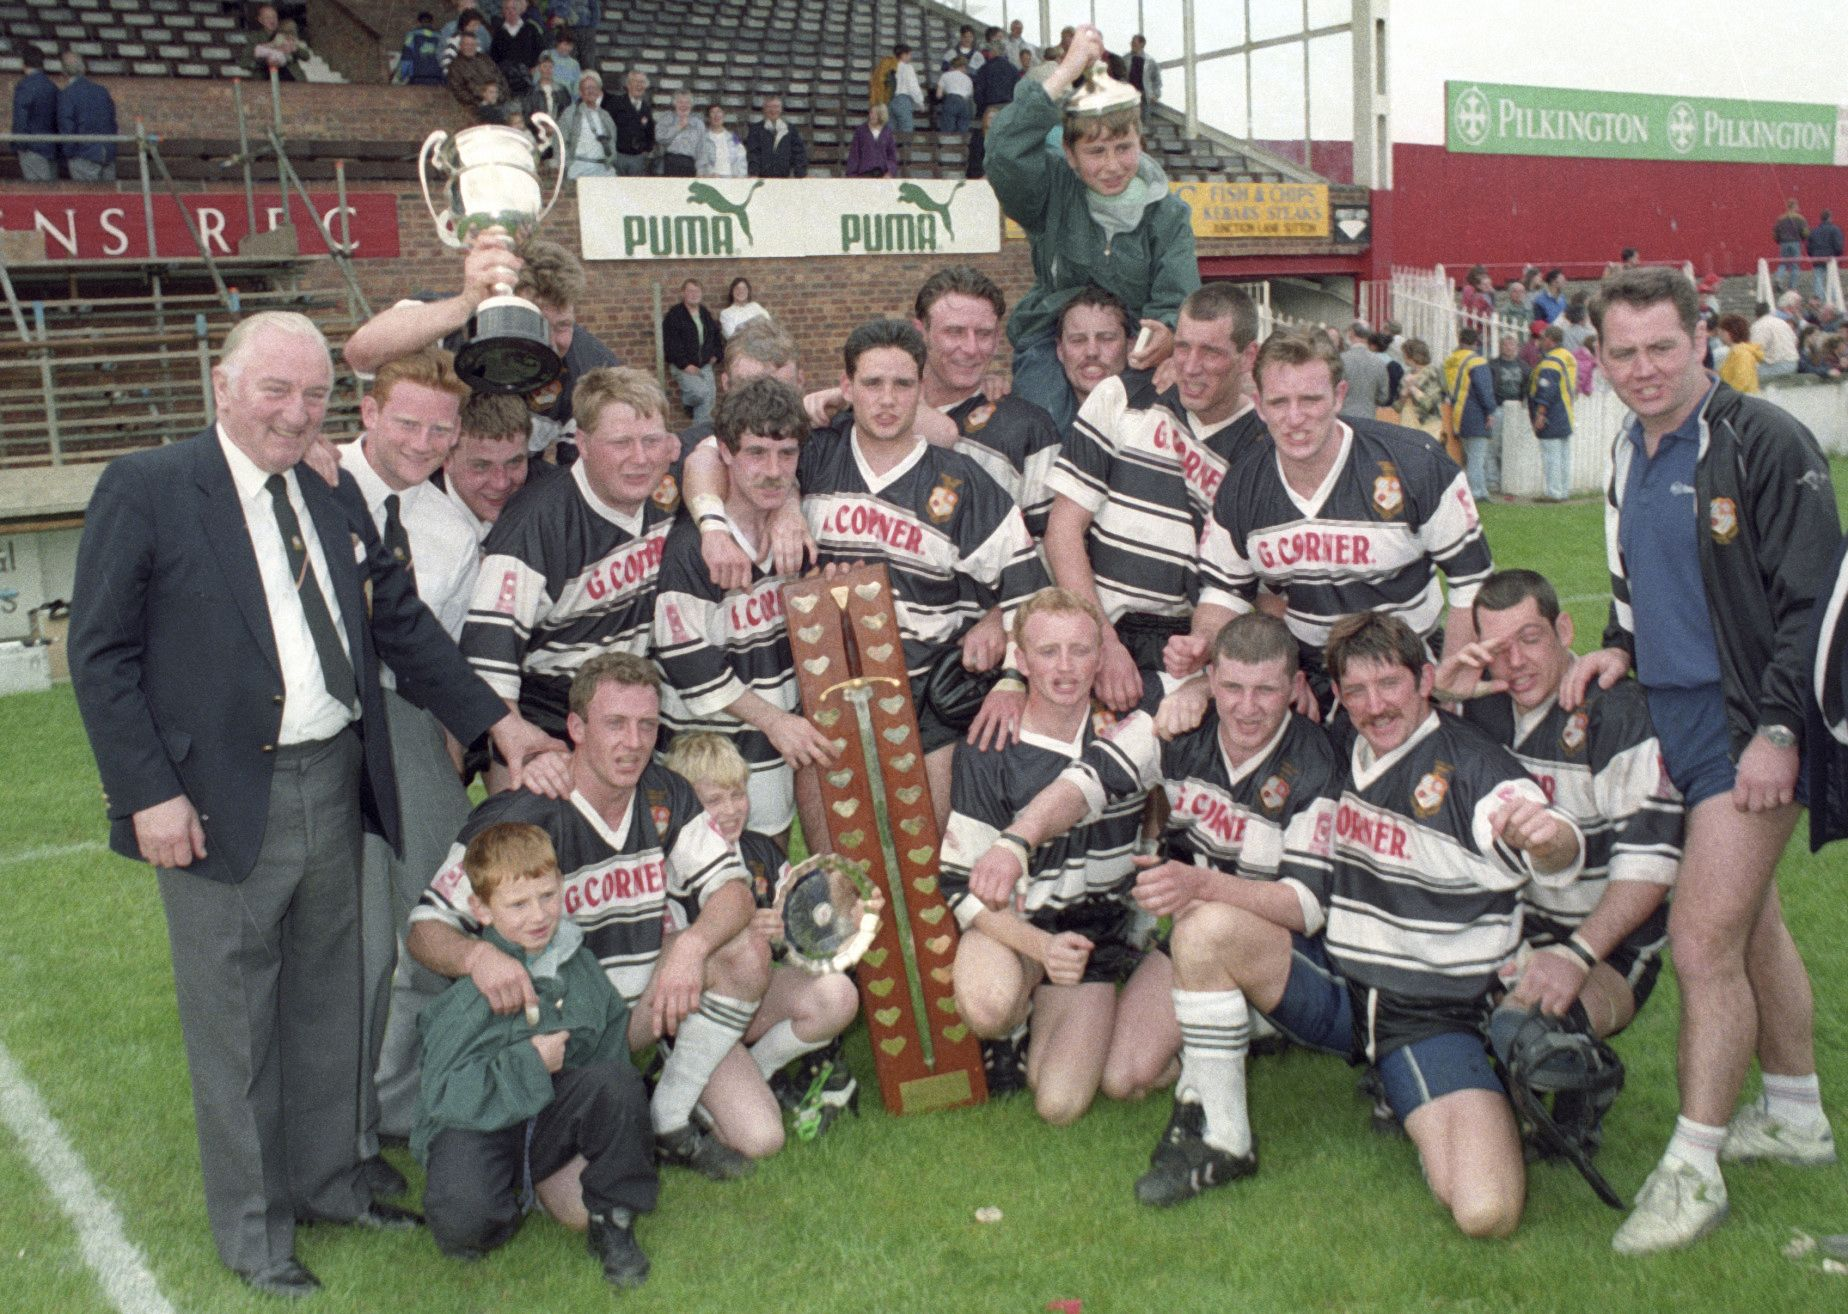 REUNION 25 YEARS ON FROM BEST SEASON EVER